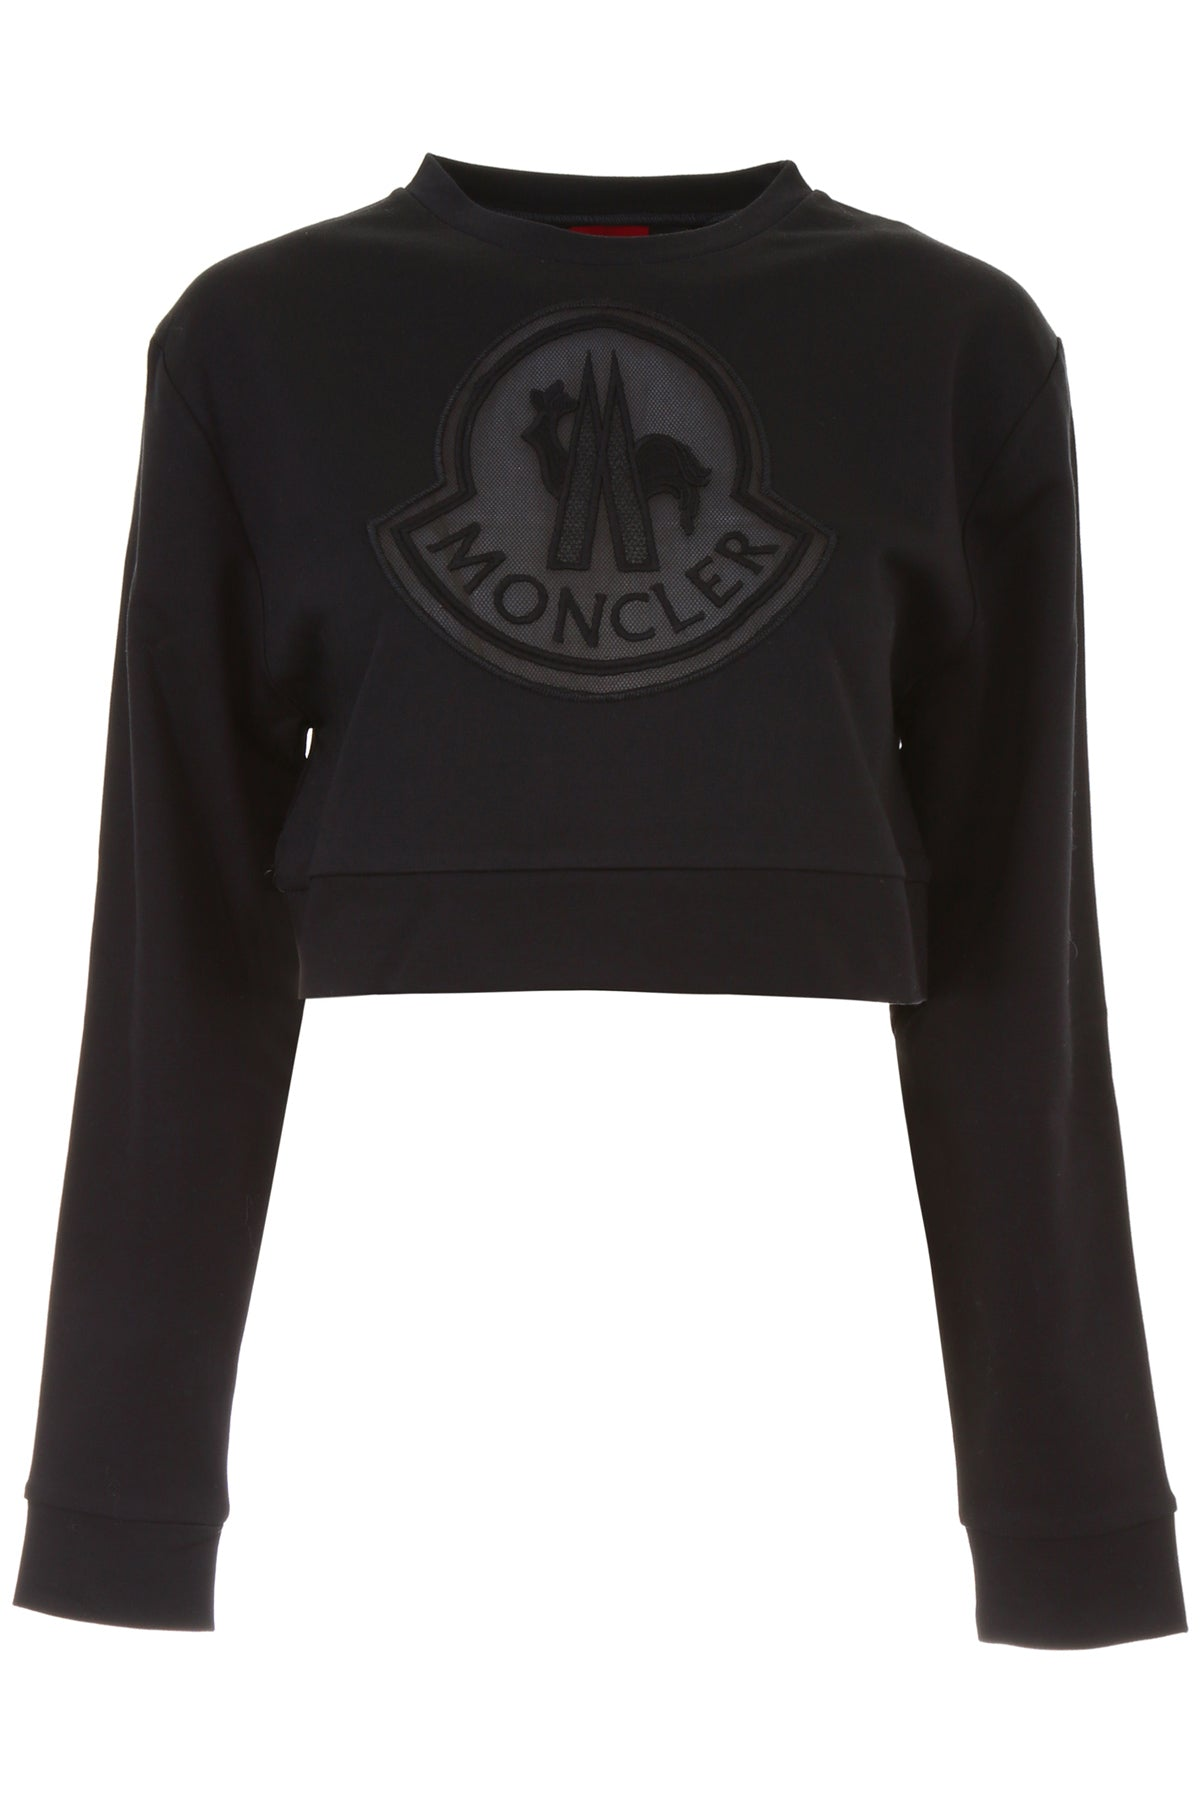 MONCLER GAMME ROUGE CROPPED SWEATER